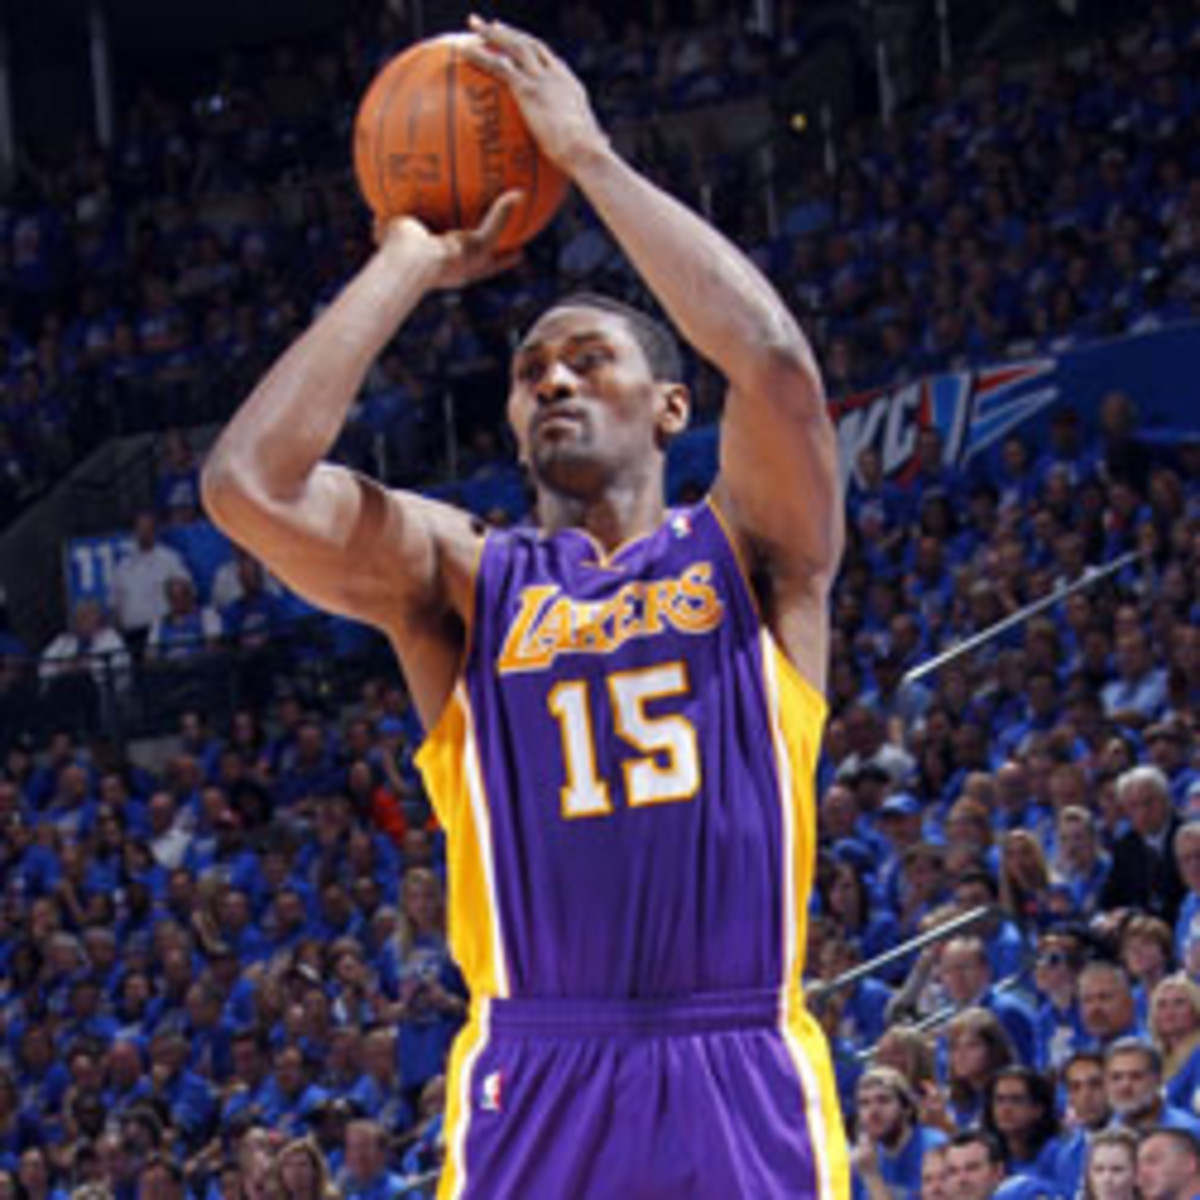 Los Angeles Lakers forward Metta World Peace has a knee injury and sent back home for evaluation. (Layne Murdoch/Getty Images)